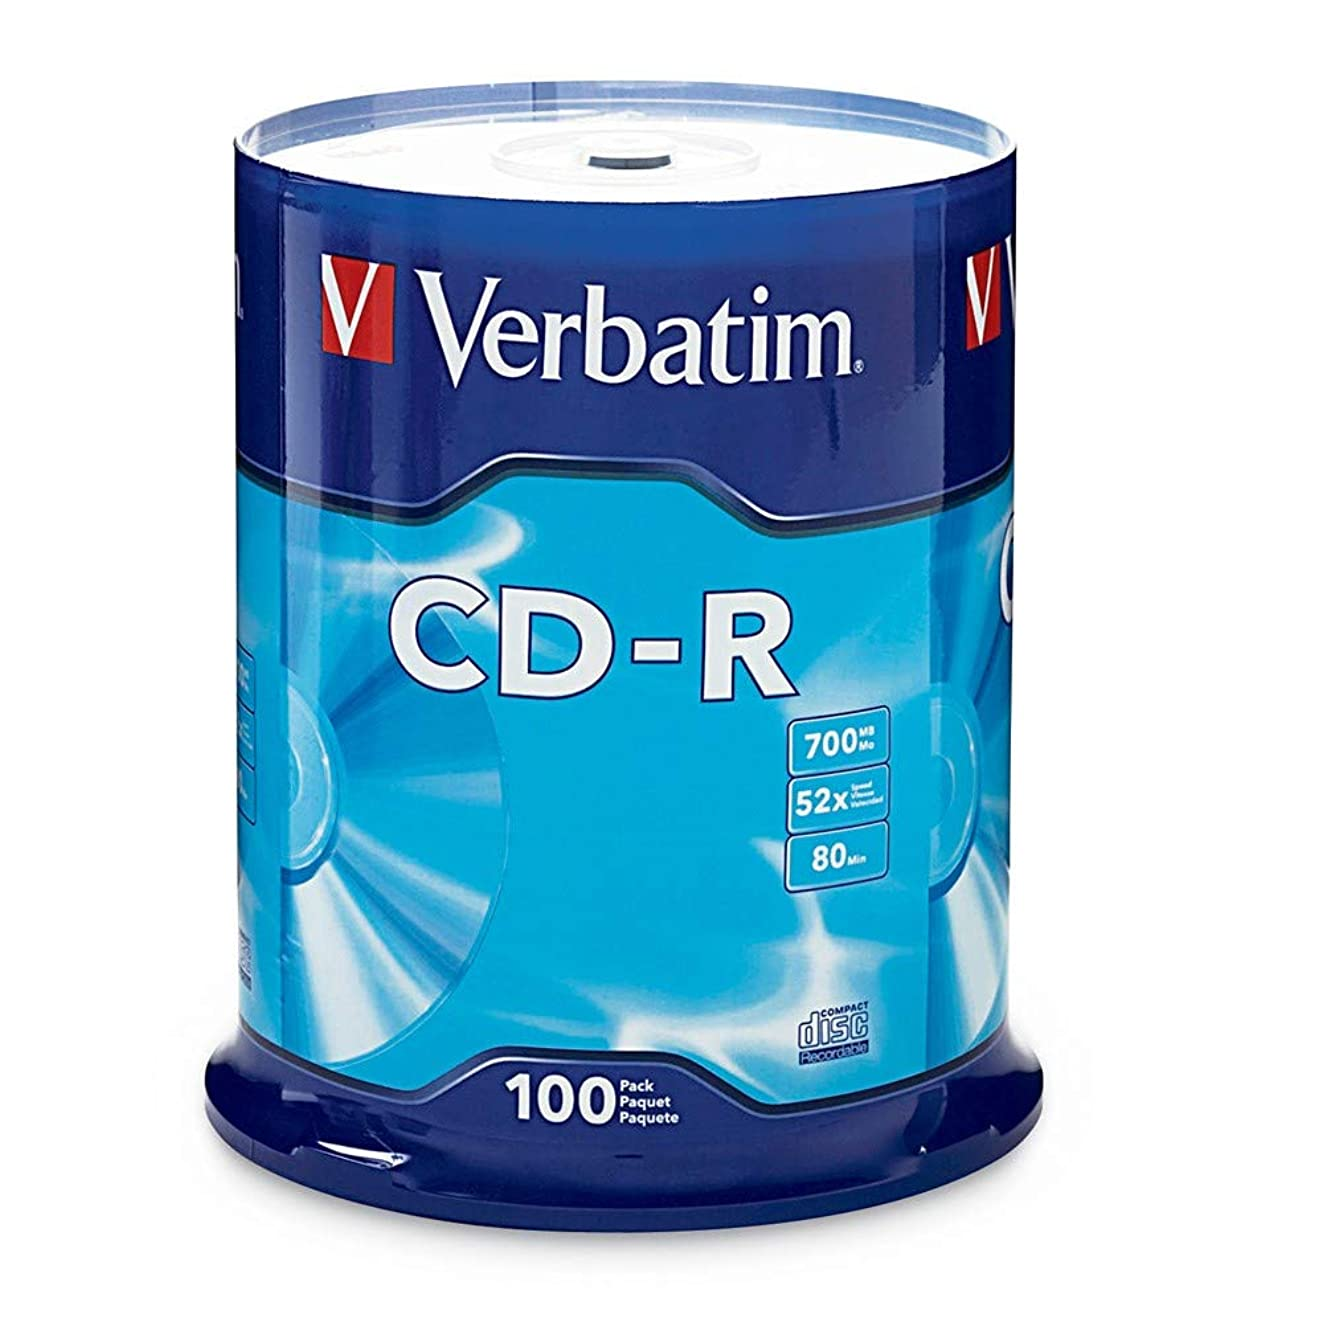 Verbatim CD-R 700MB 80 Minute 52x Recordable Disc - 100 Pack Spindle - 94554